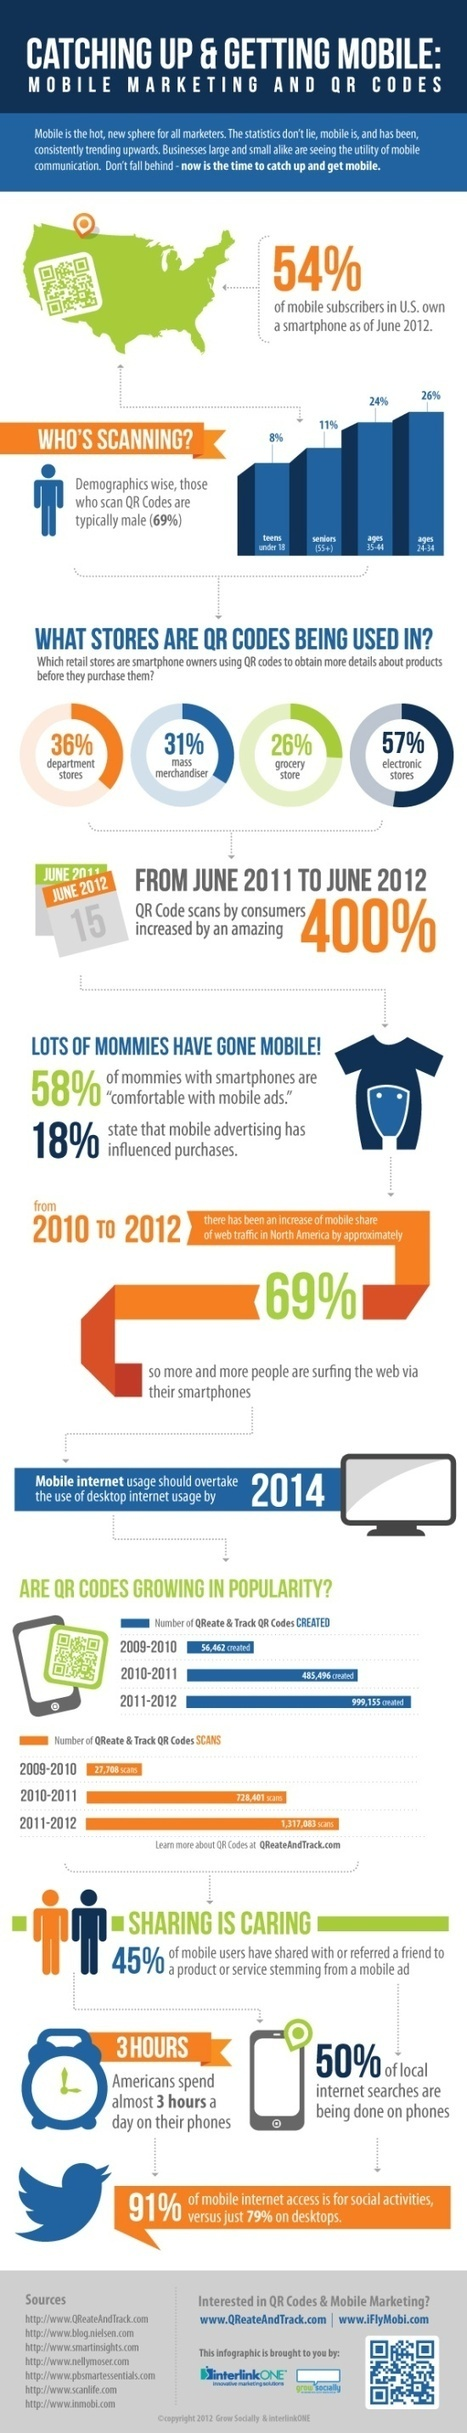 Catching Up and Getting Mobile [Infographic] | Mobile Marketing Resources and Tips | Scoop.it